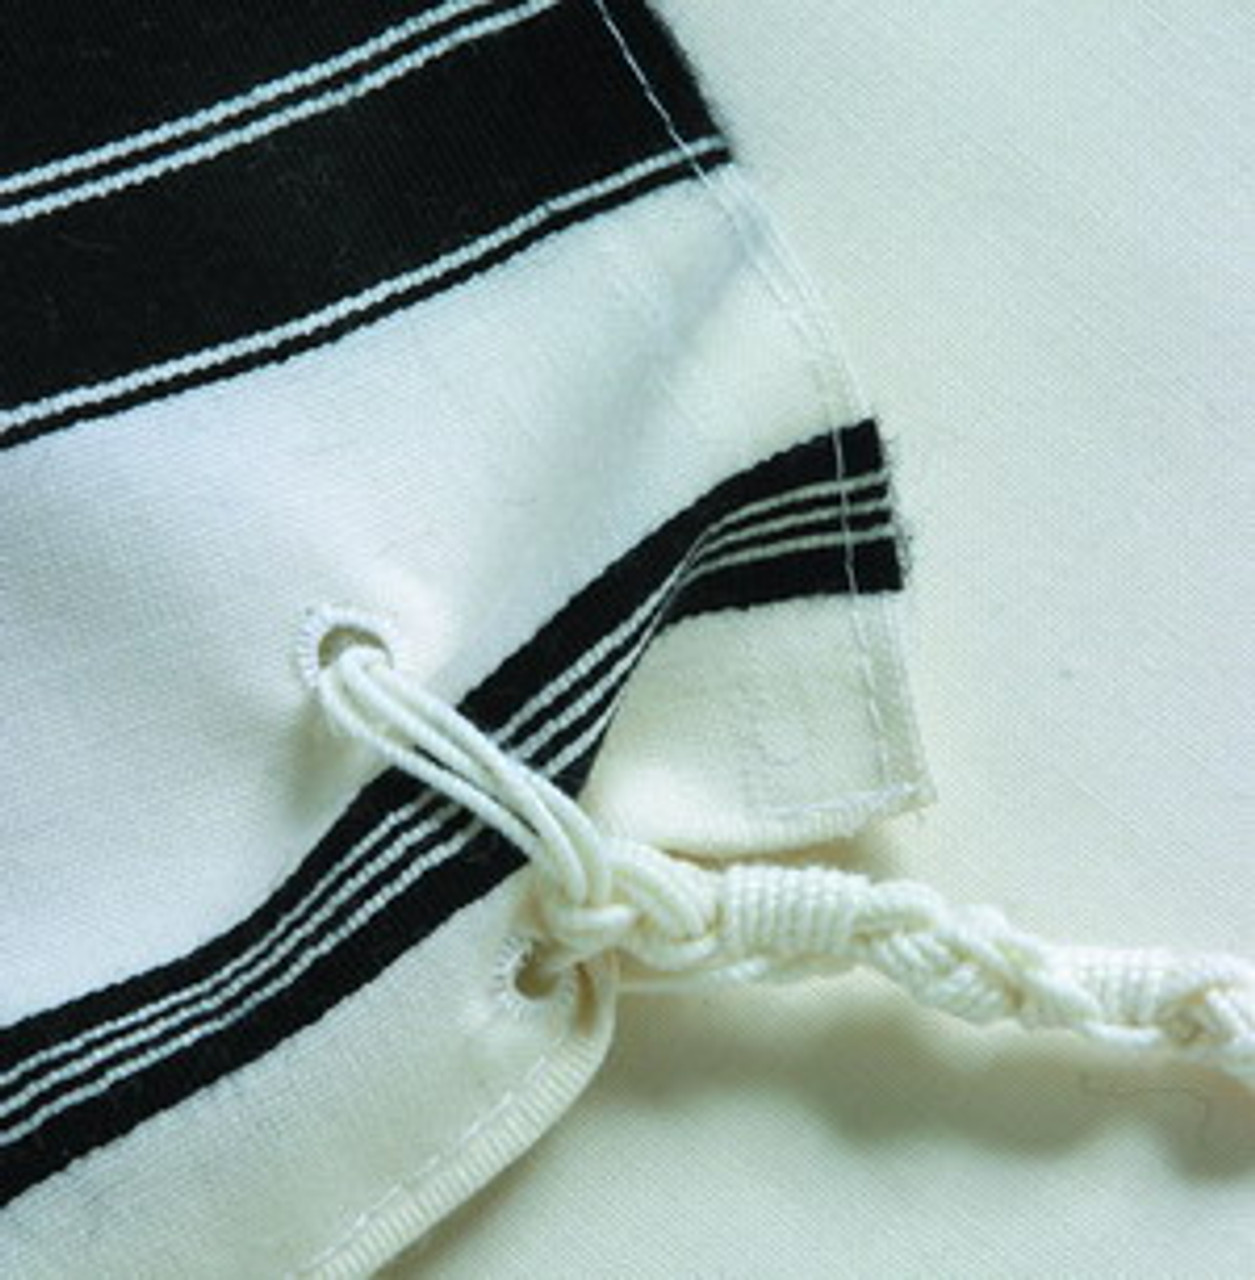 Vertically aligned tzitzit holes